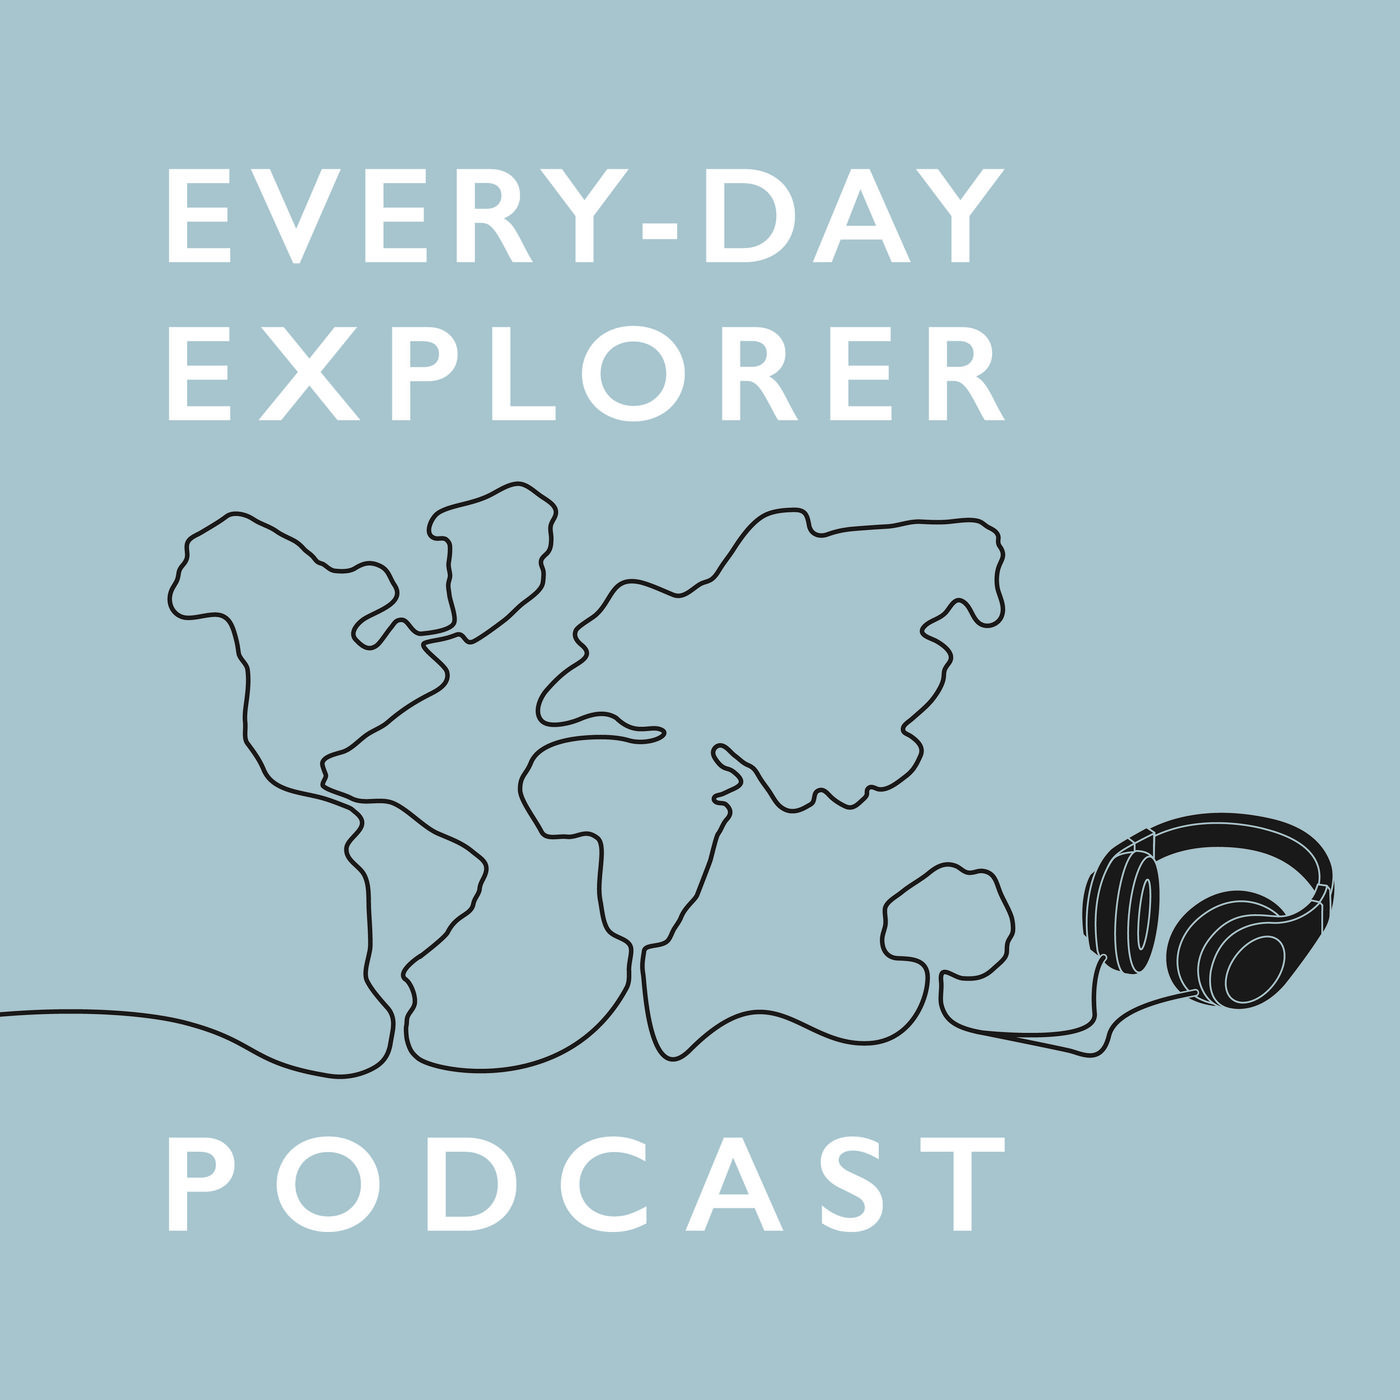 Every-Day Explorer Podcast